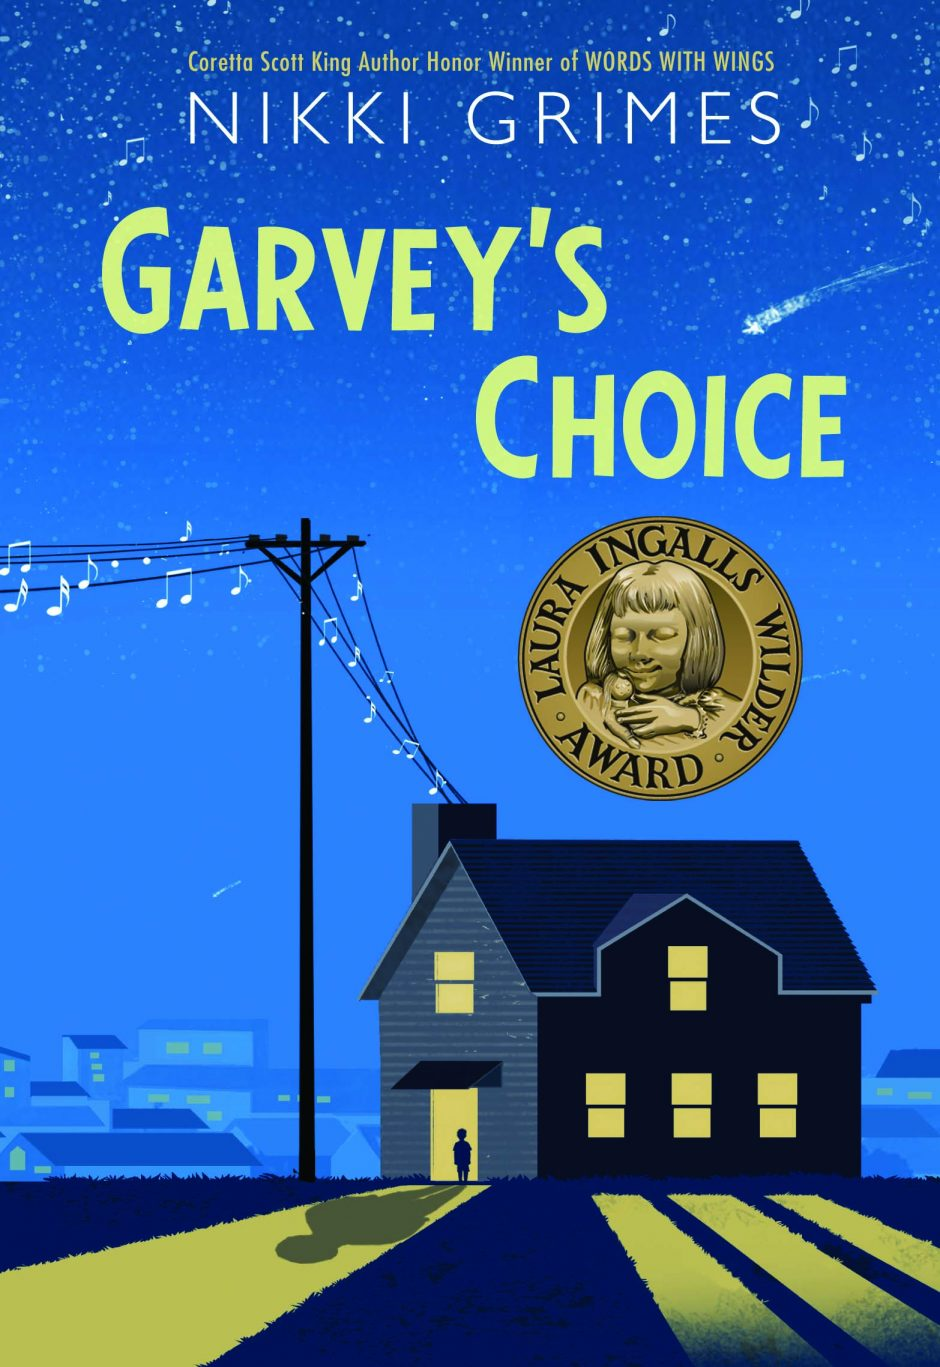 "book cover of ""Garvey's Choice"" by Nikki Grimes, Coretta Scott King author, showing Laura Ingalls Wilder Award seal on top of illustration of dark house with lights shining into darkness, connected to telephone pole and line strung with musical notes"